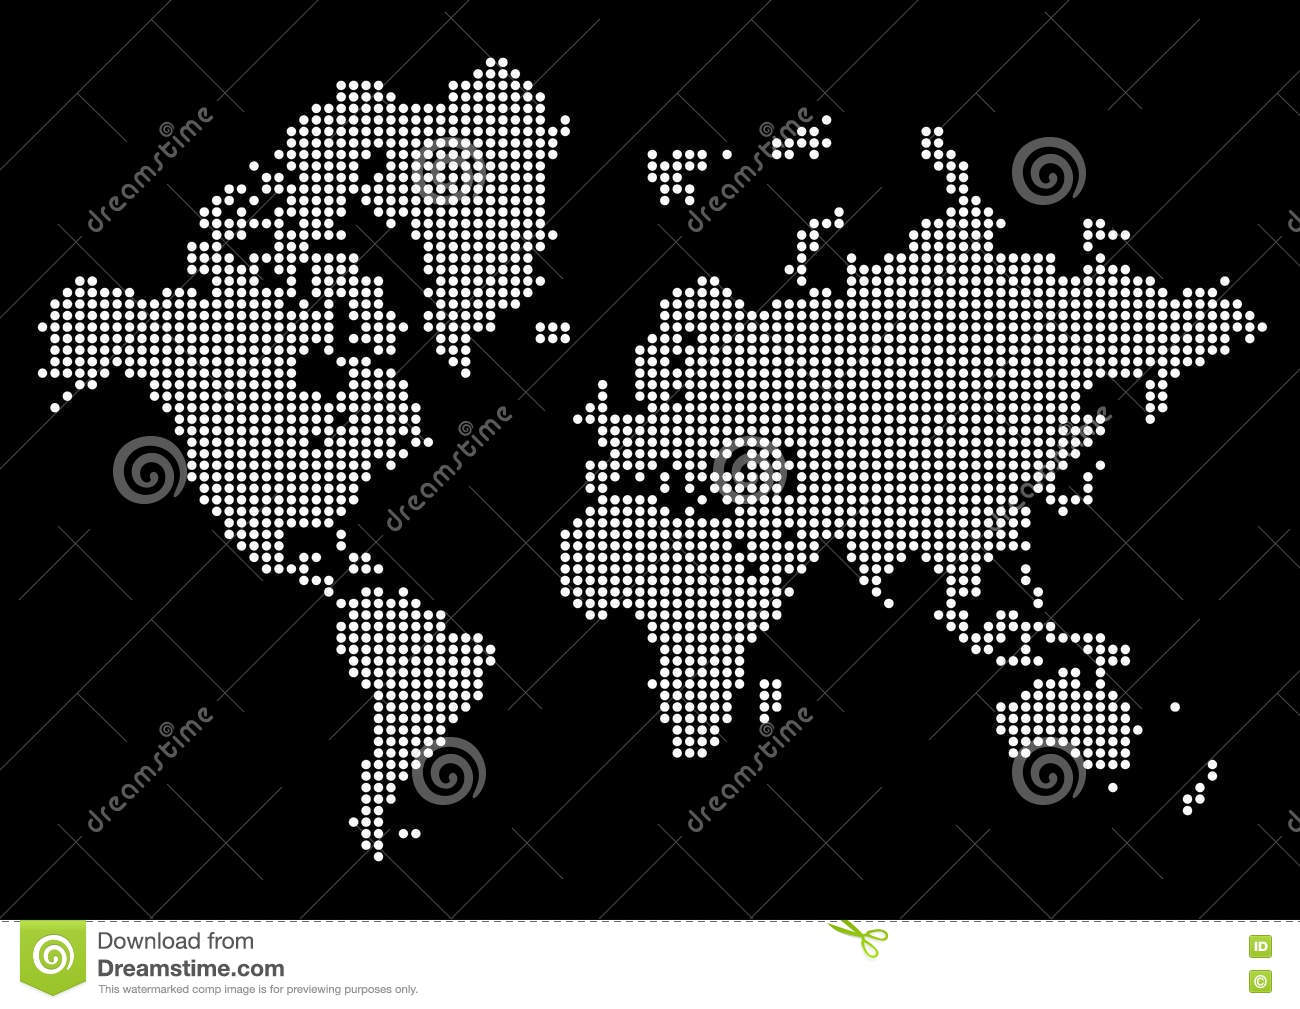 Abstract world map made of dots white dot world on black background abstract world map made of dots white dot world on black background gumiabroncs Images